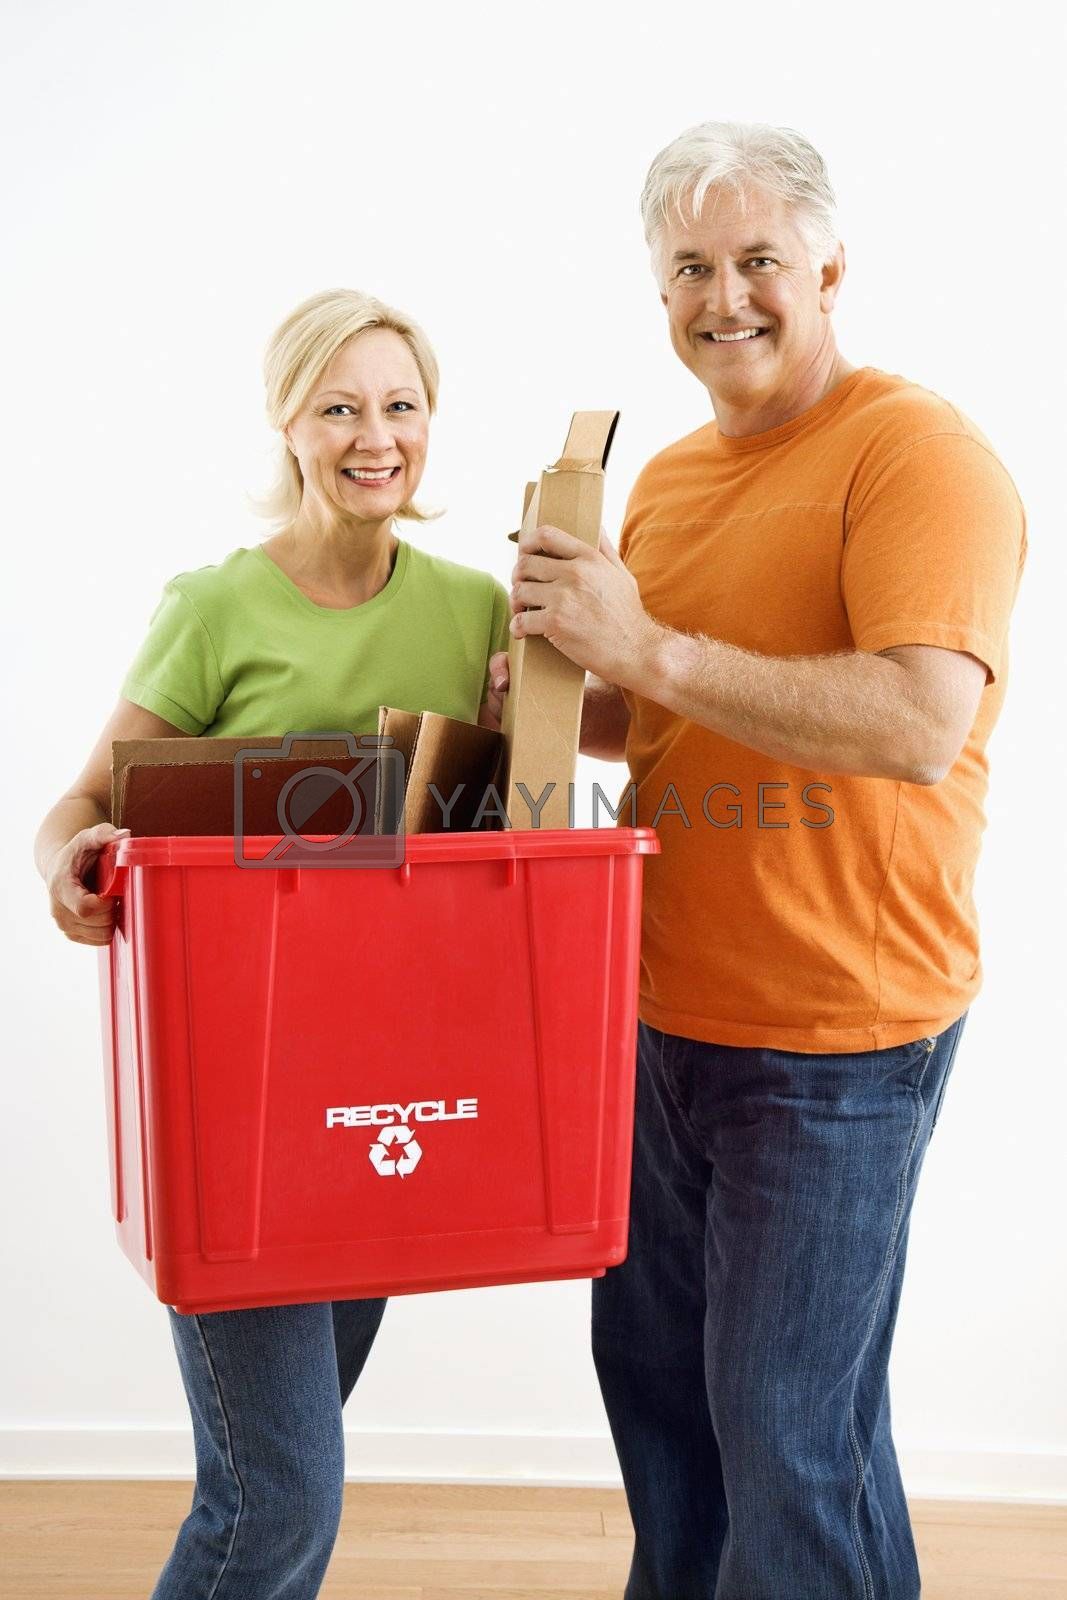 Man and woman smiling while holding recycling bin.